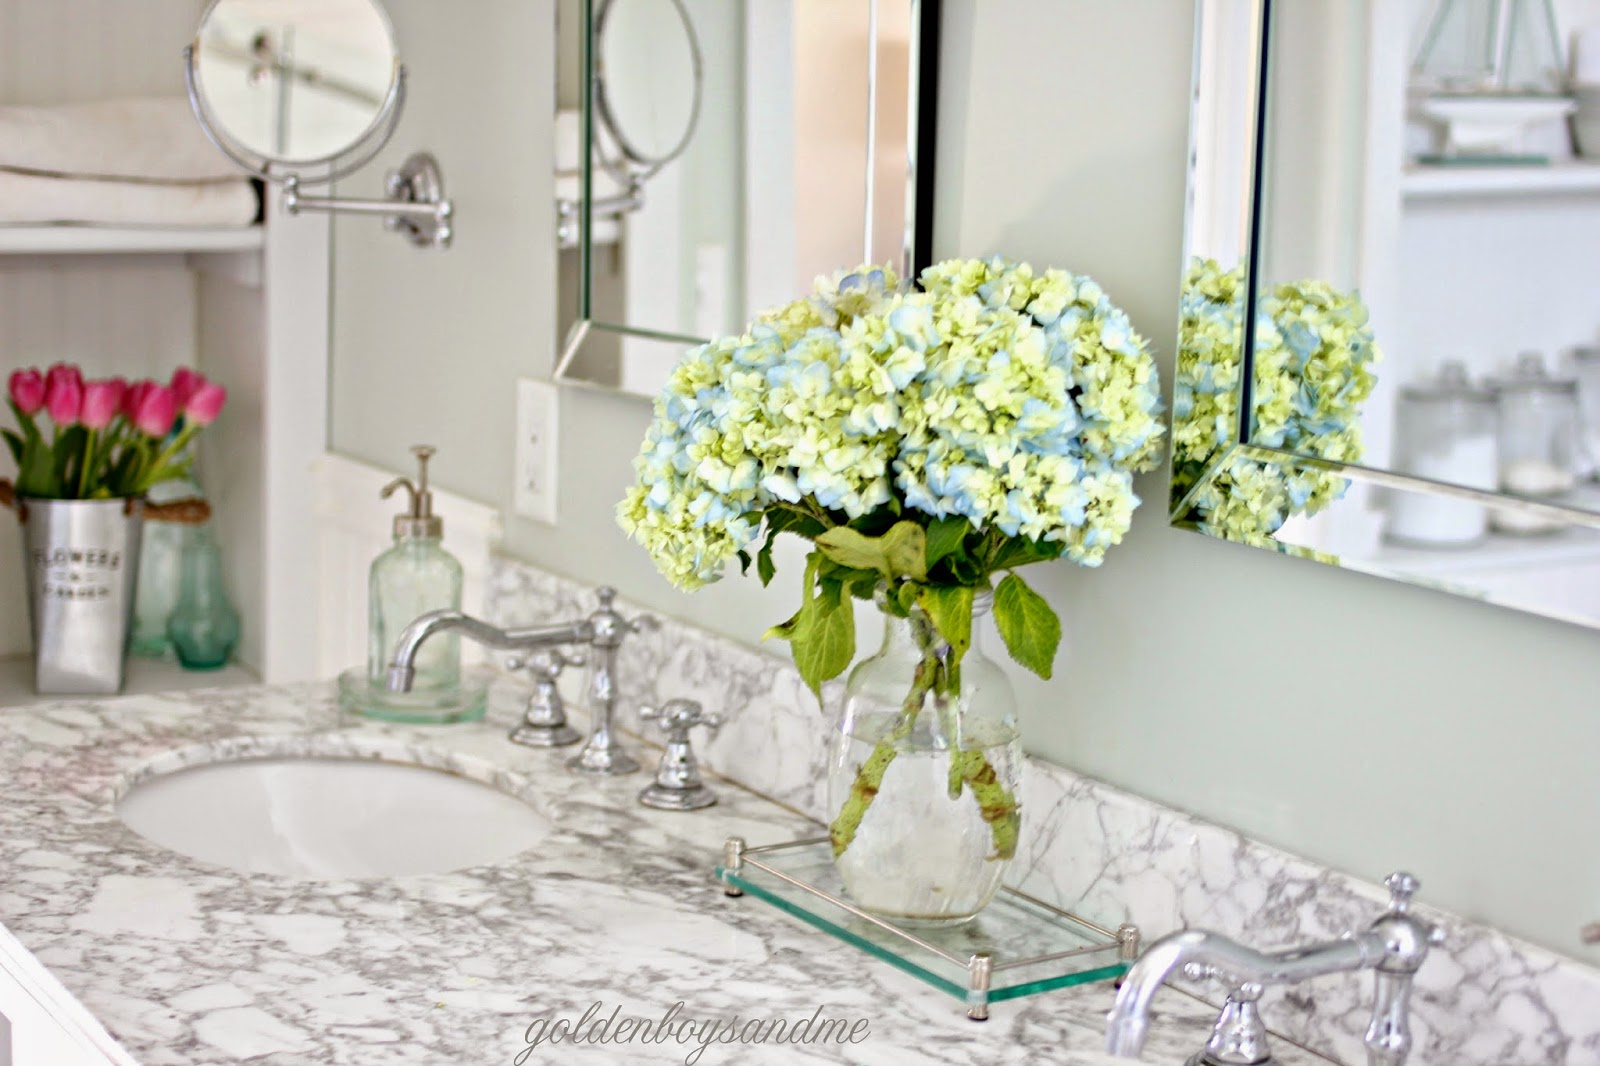 Hydrangeas and carrera marble counter in DIY master bathroom-www.goldenboysandme.com